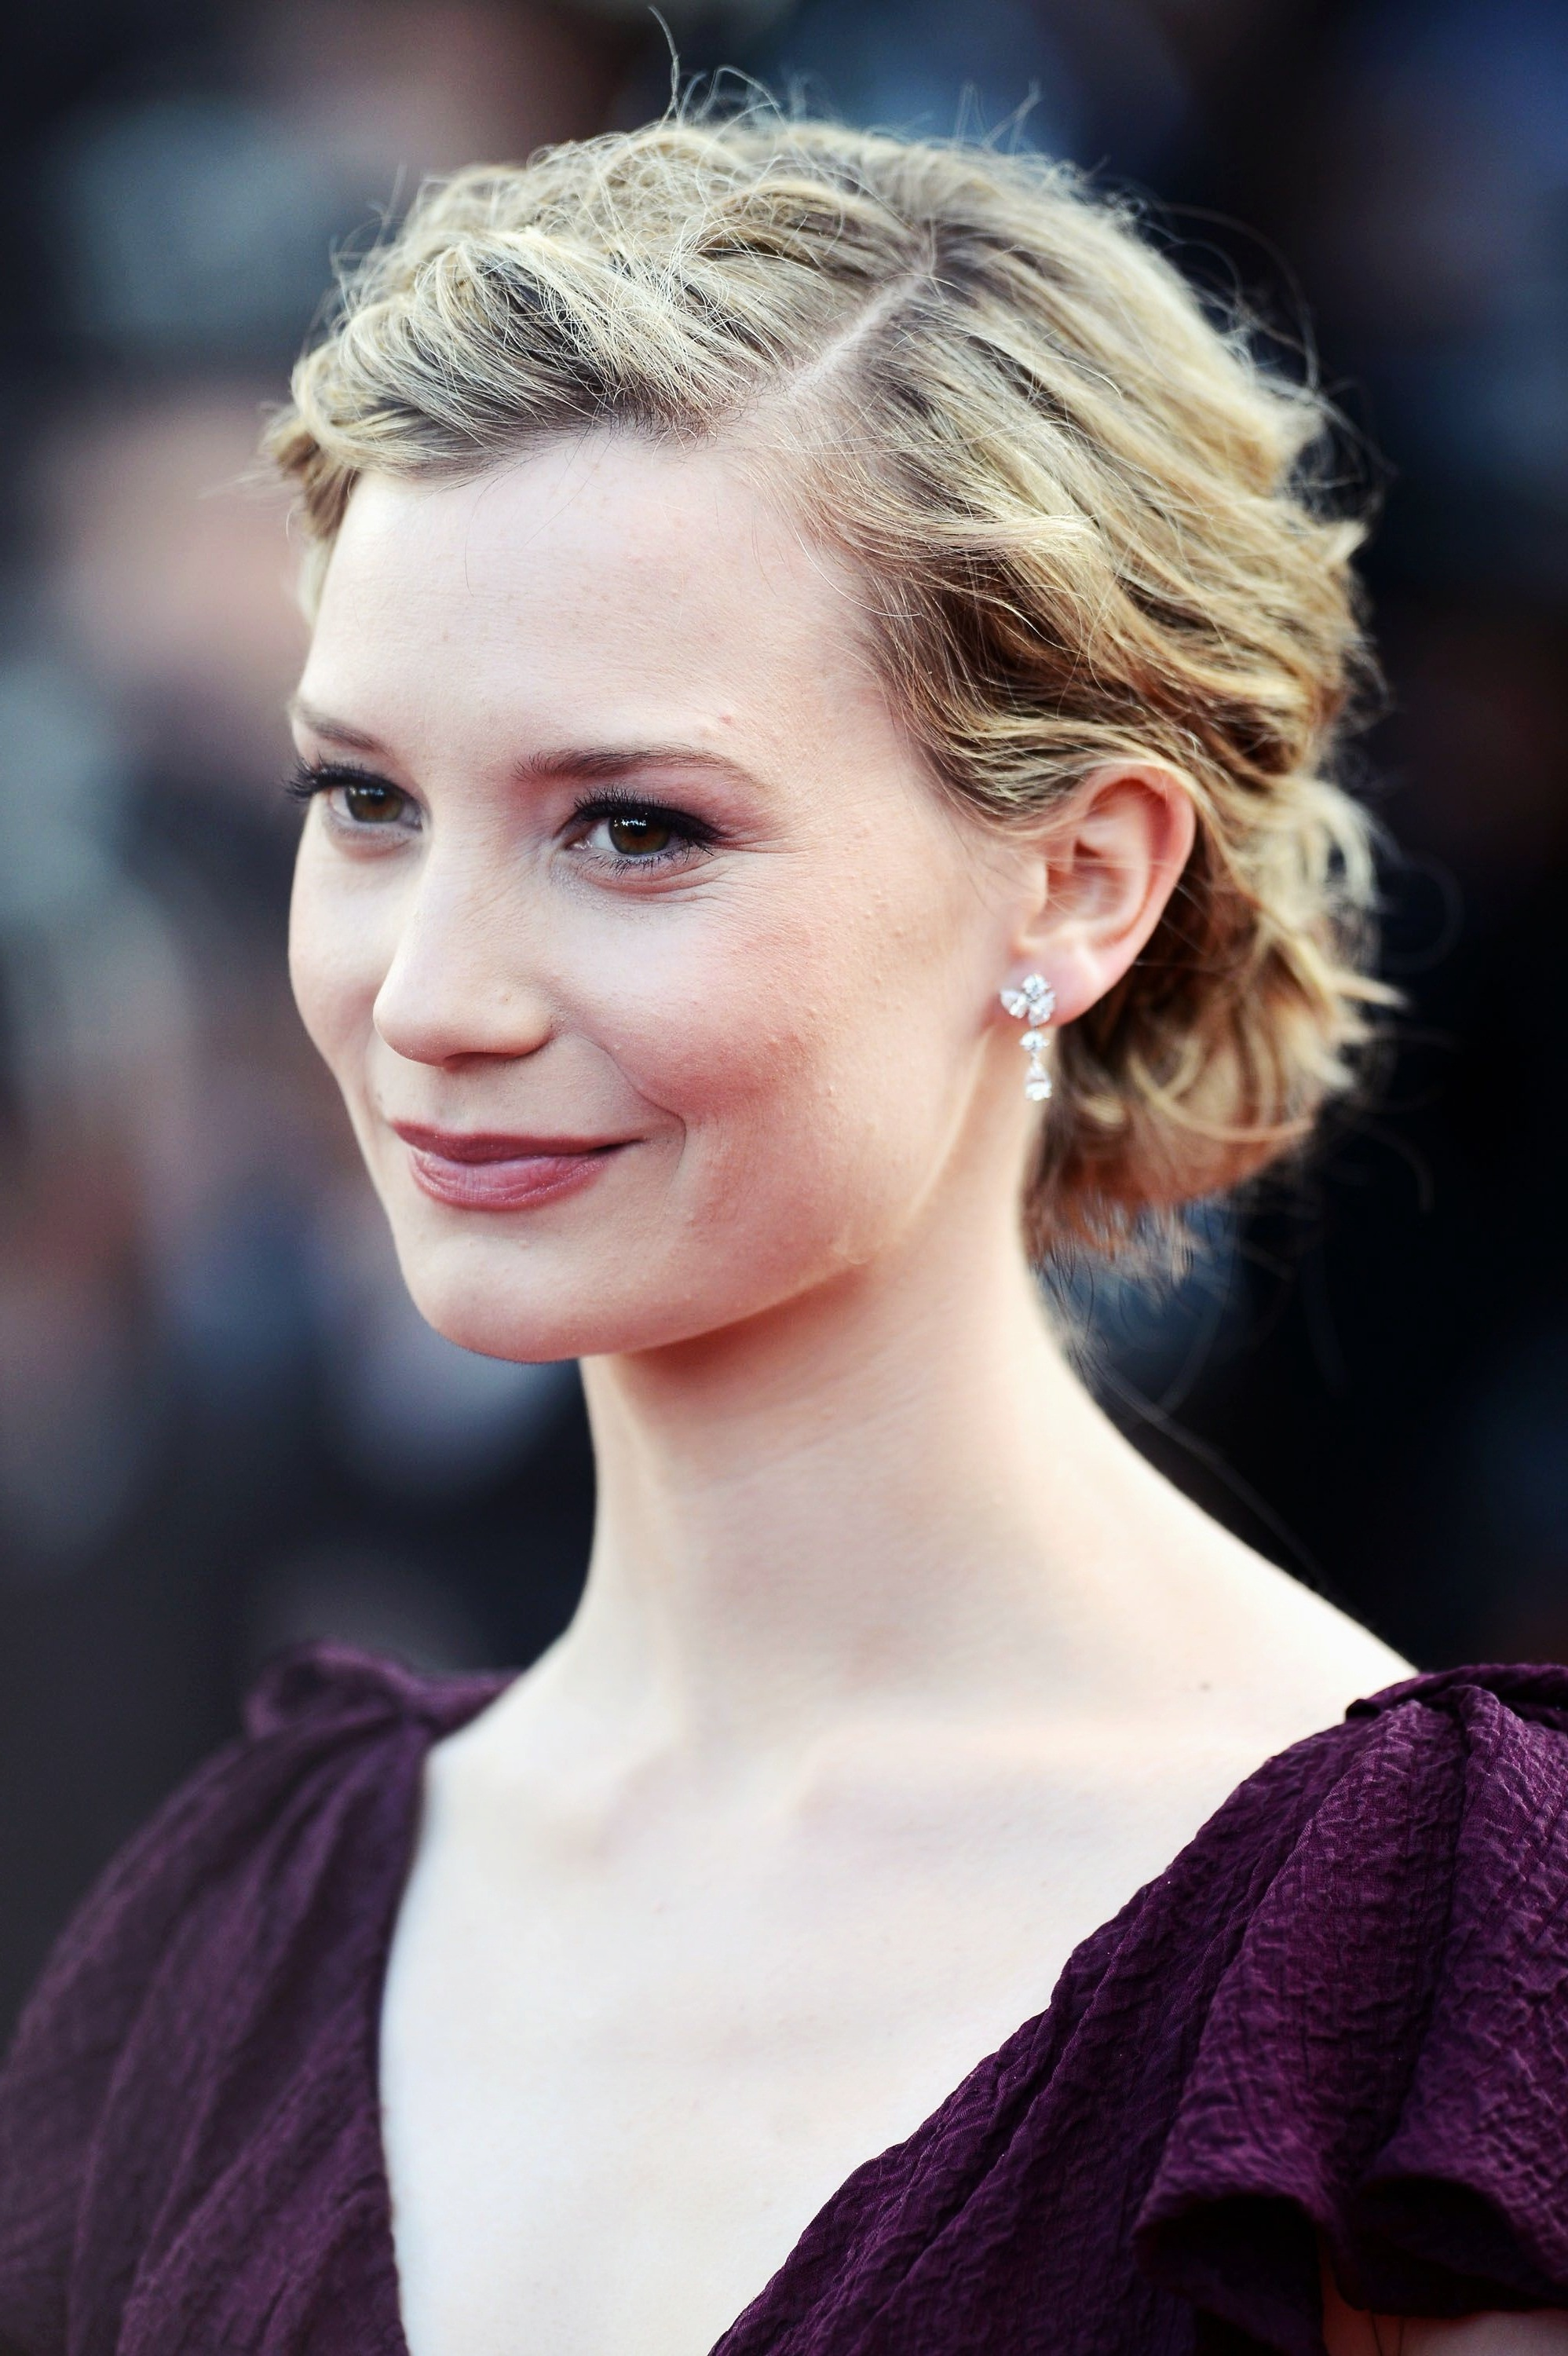 Mia Wasikowska hd wallpapers